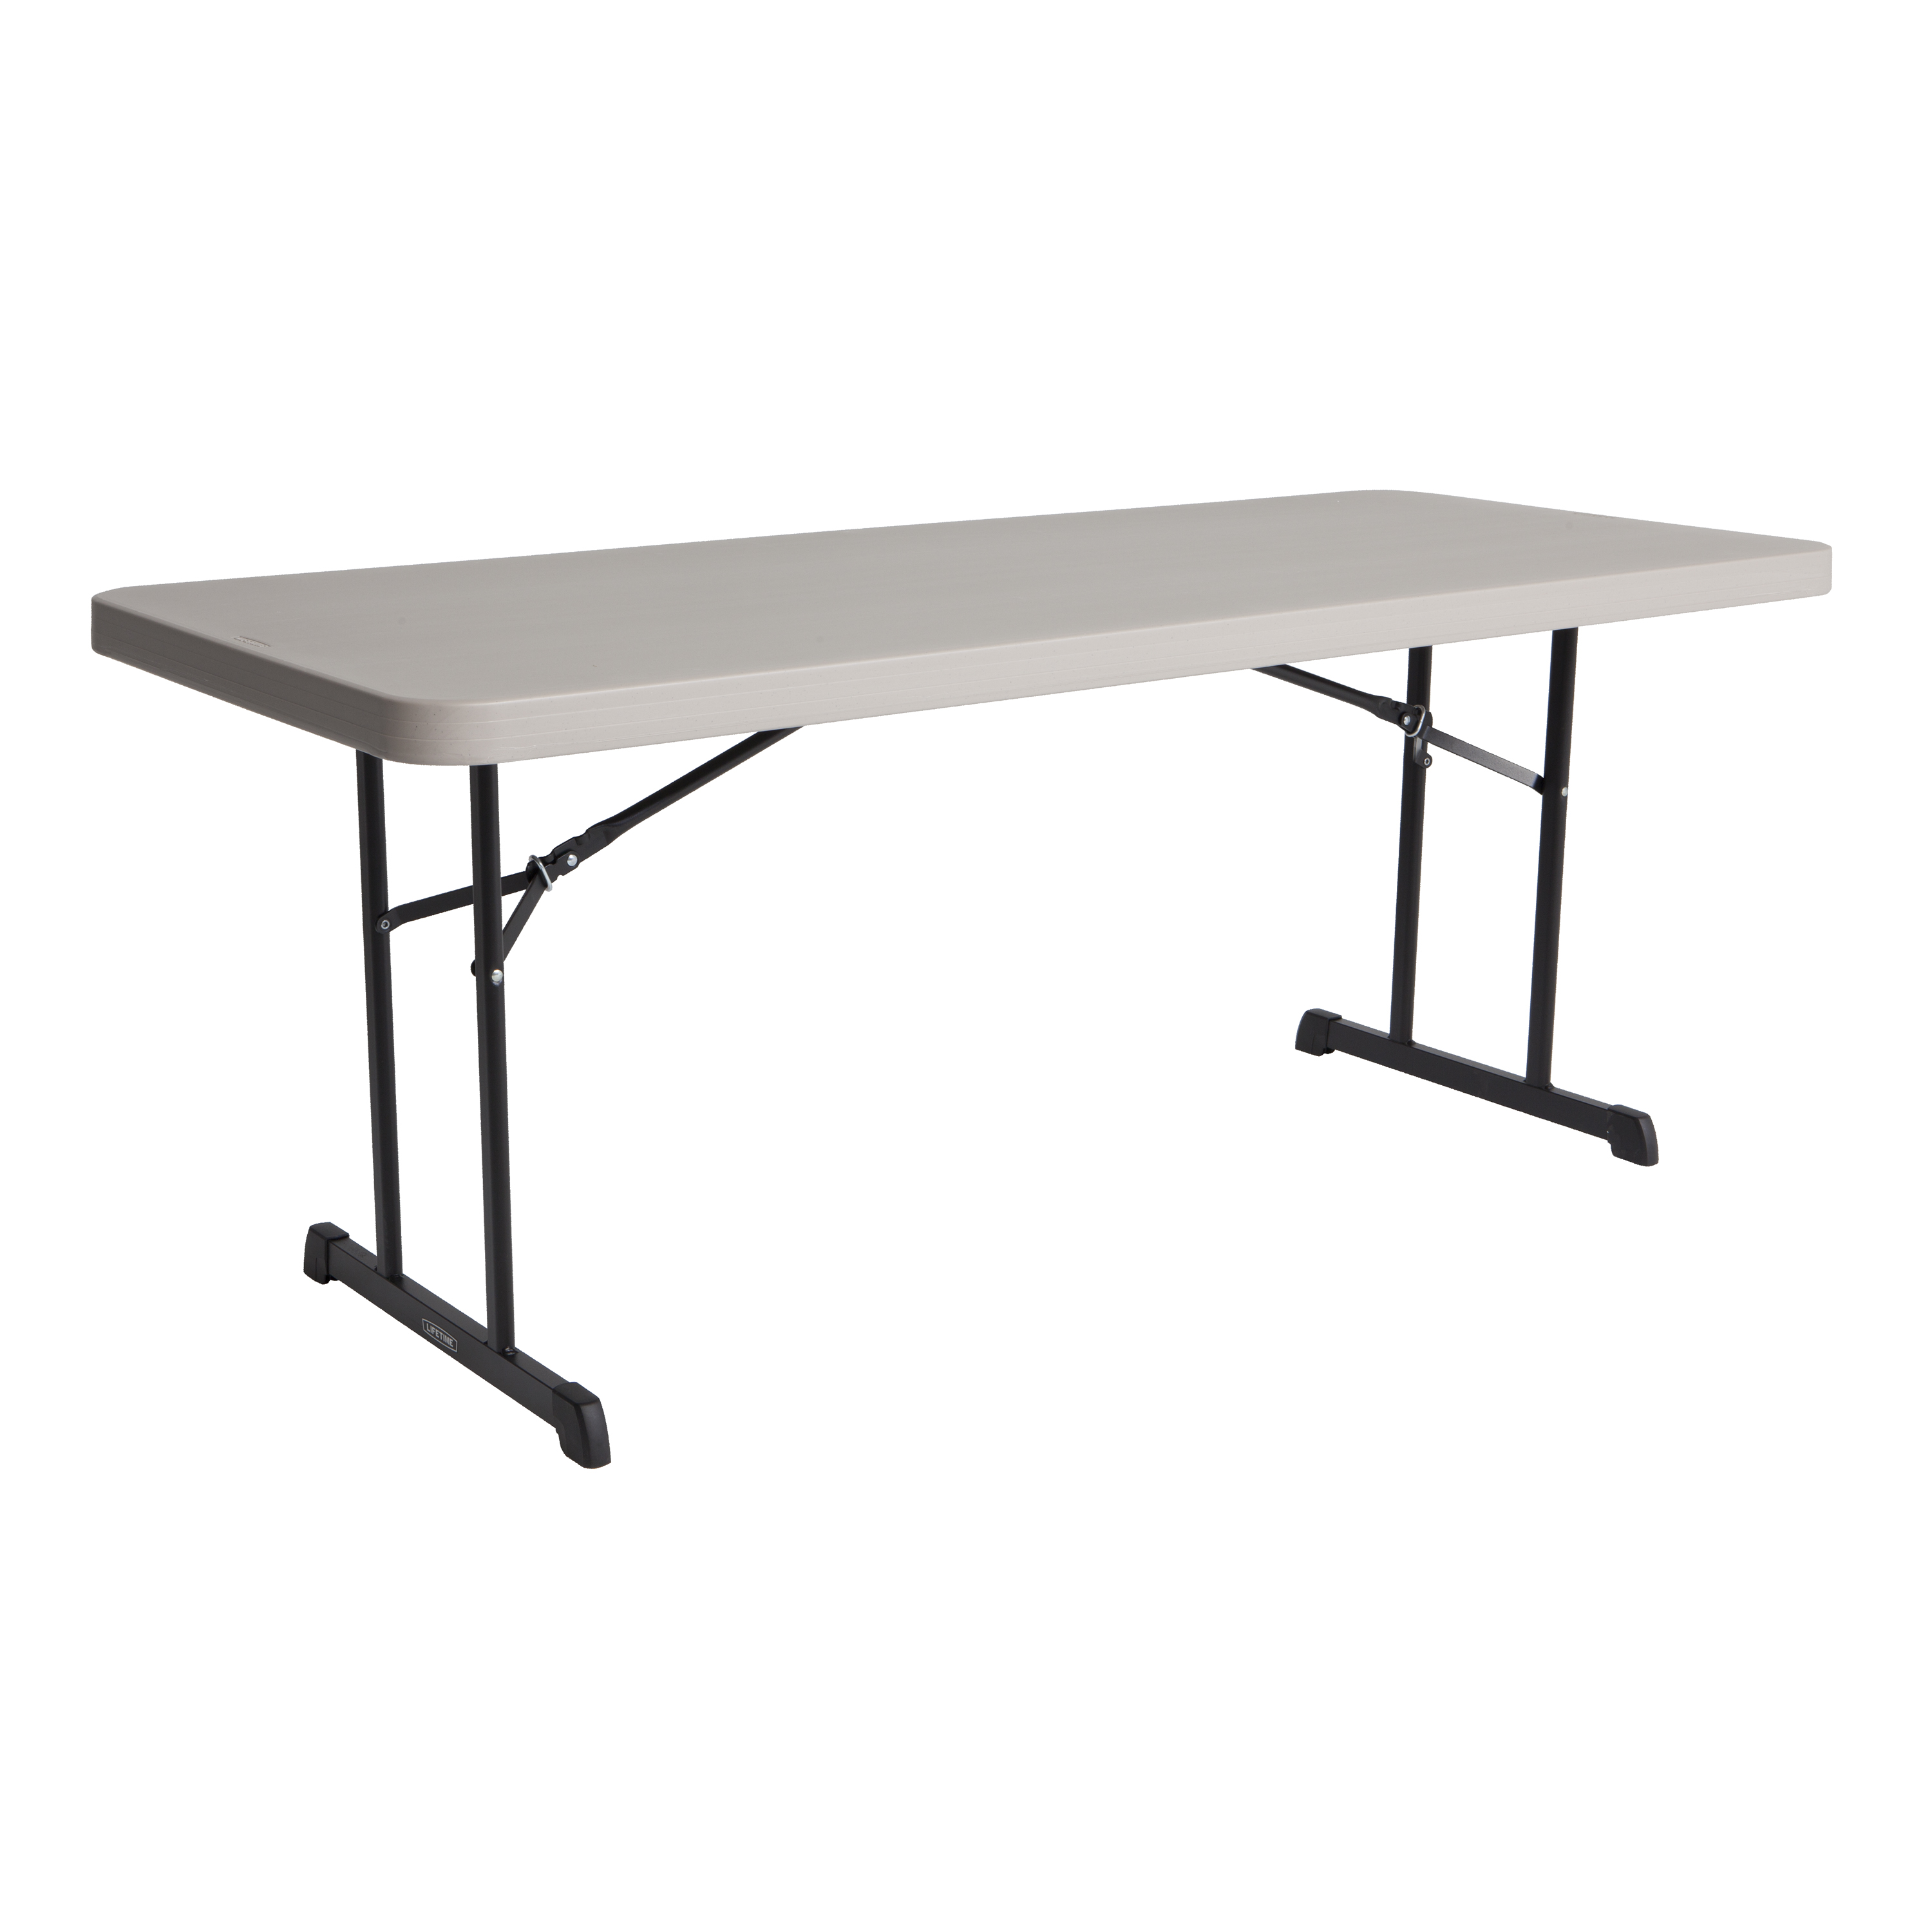 Table pliante rectangulaire 183cm (mastic) / 8 personnes